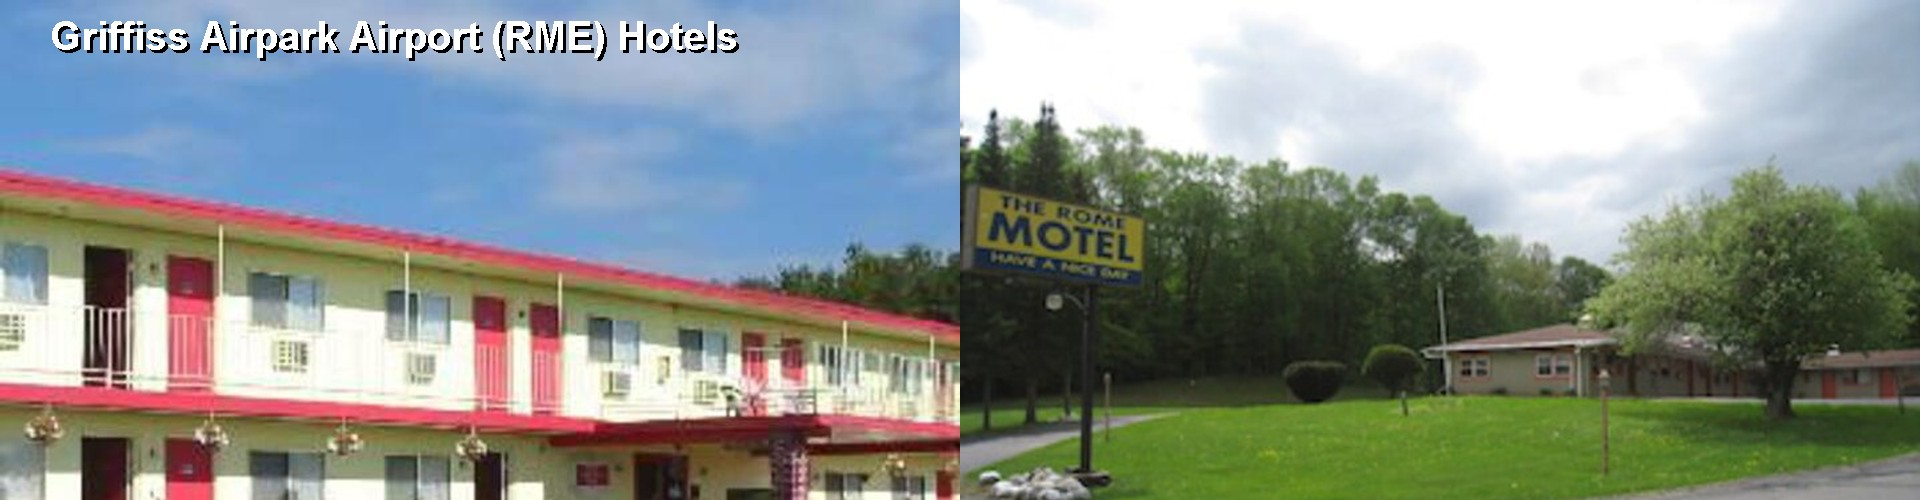 5 Best Hotels near Griffiss Airpark Airport (RME)